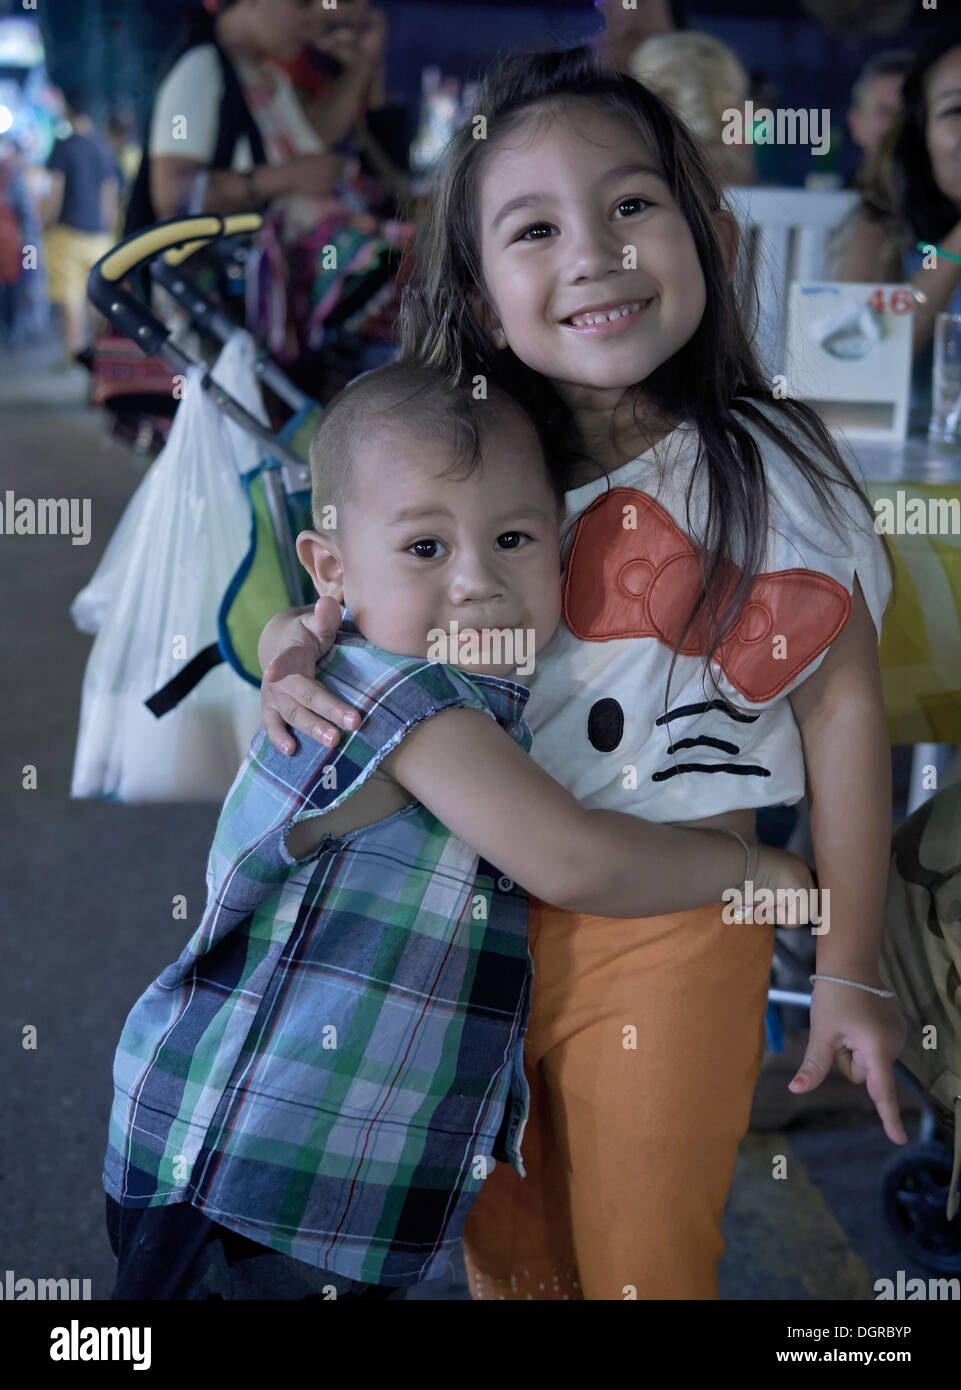 Cute kids hugging each other - brother and older sister. - Stock Image